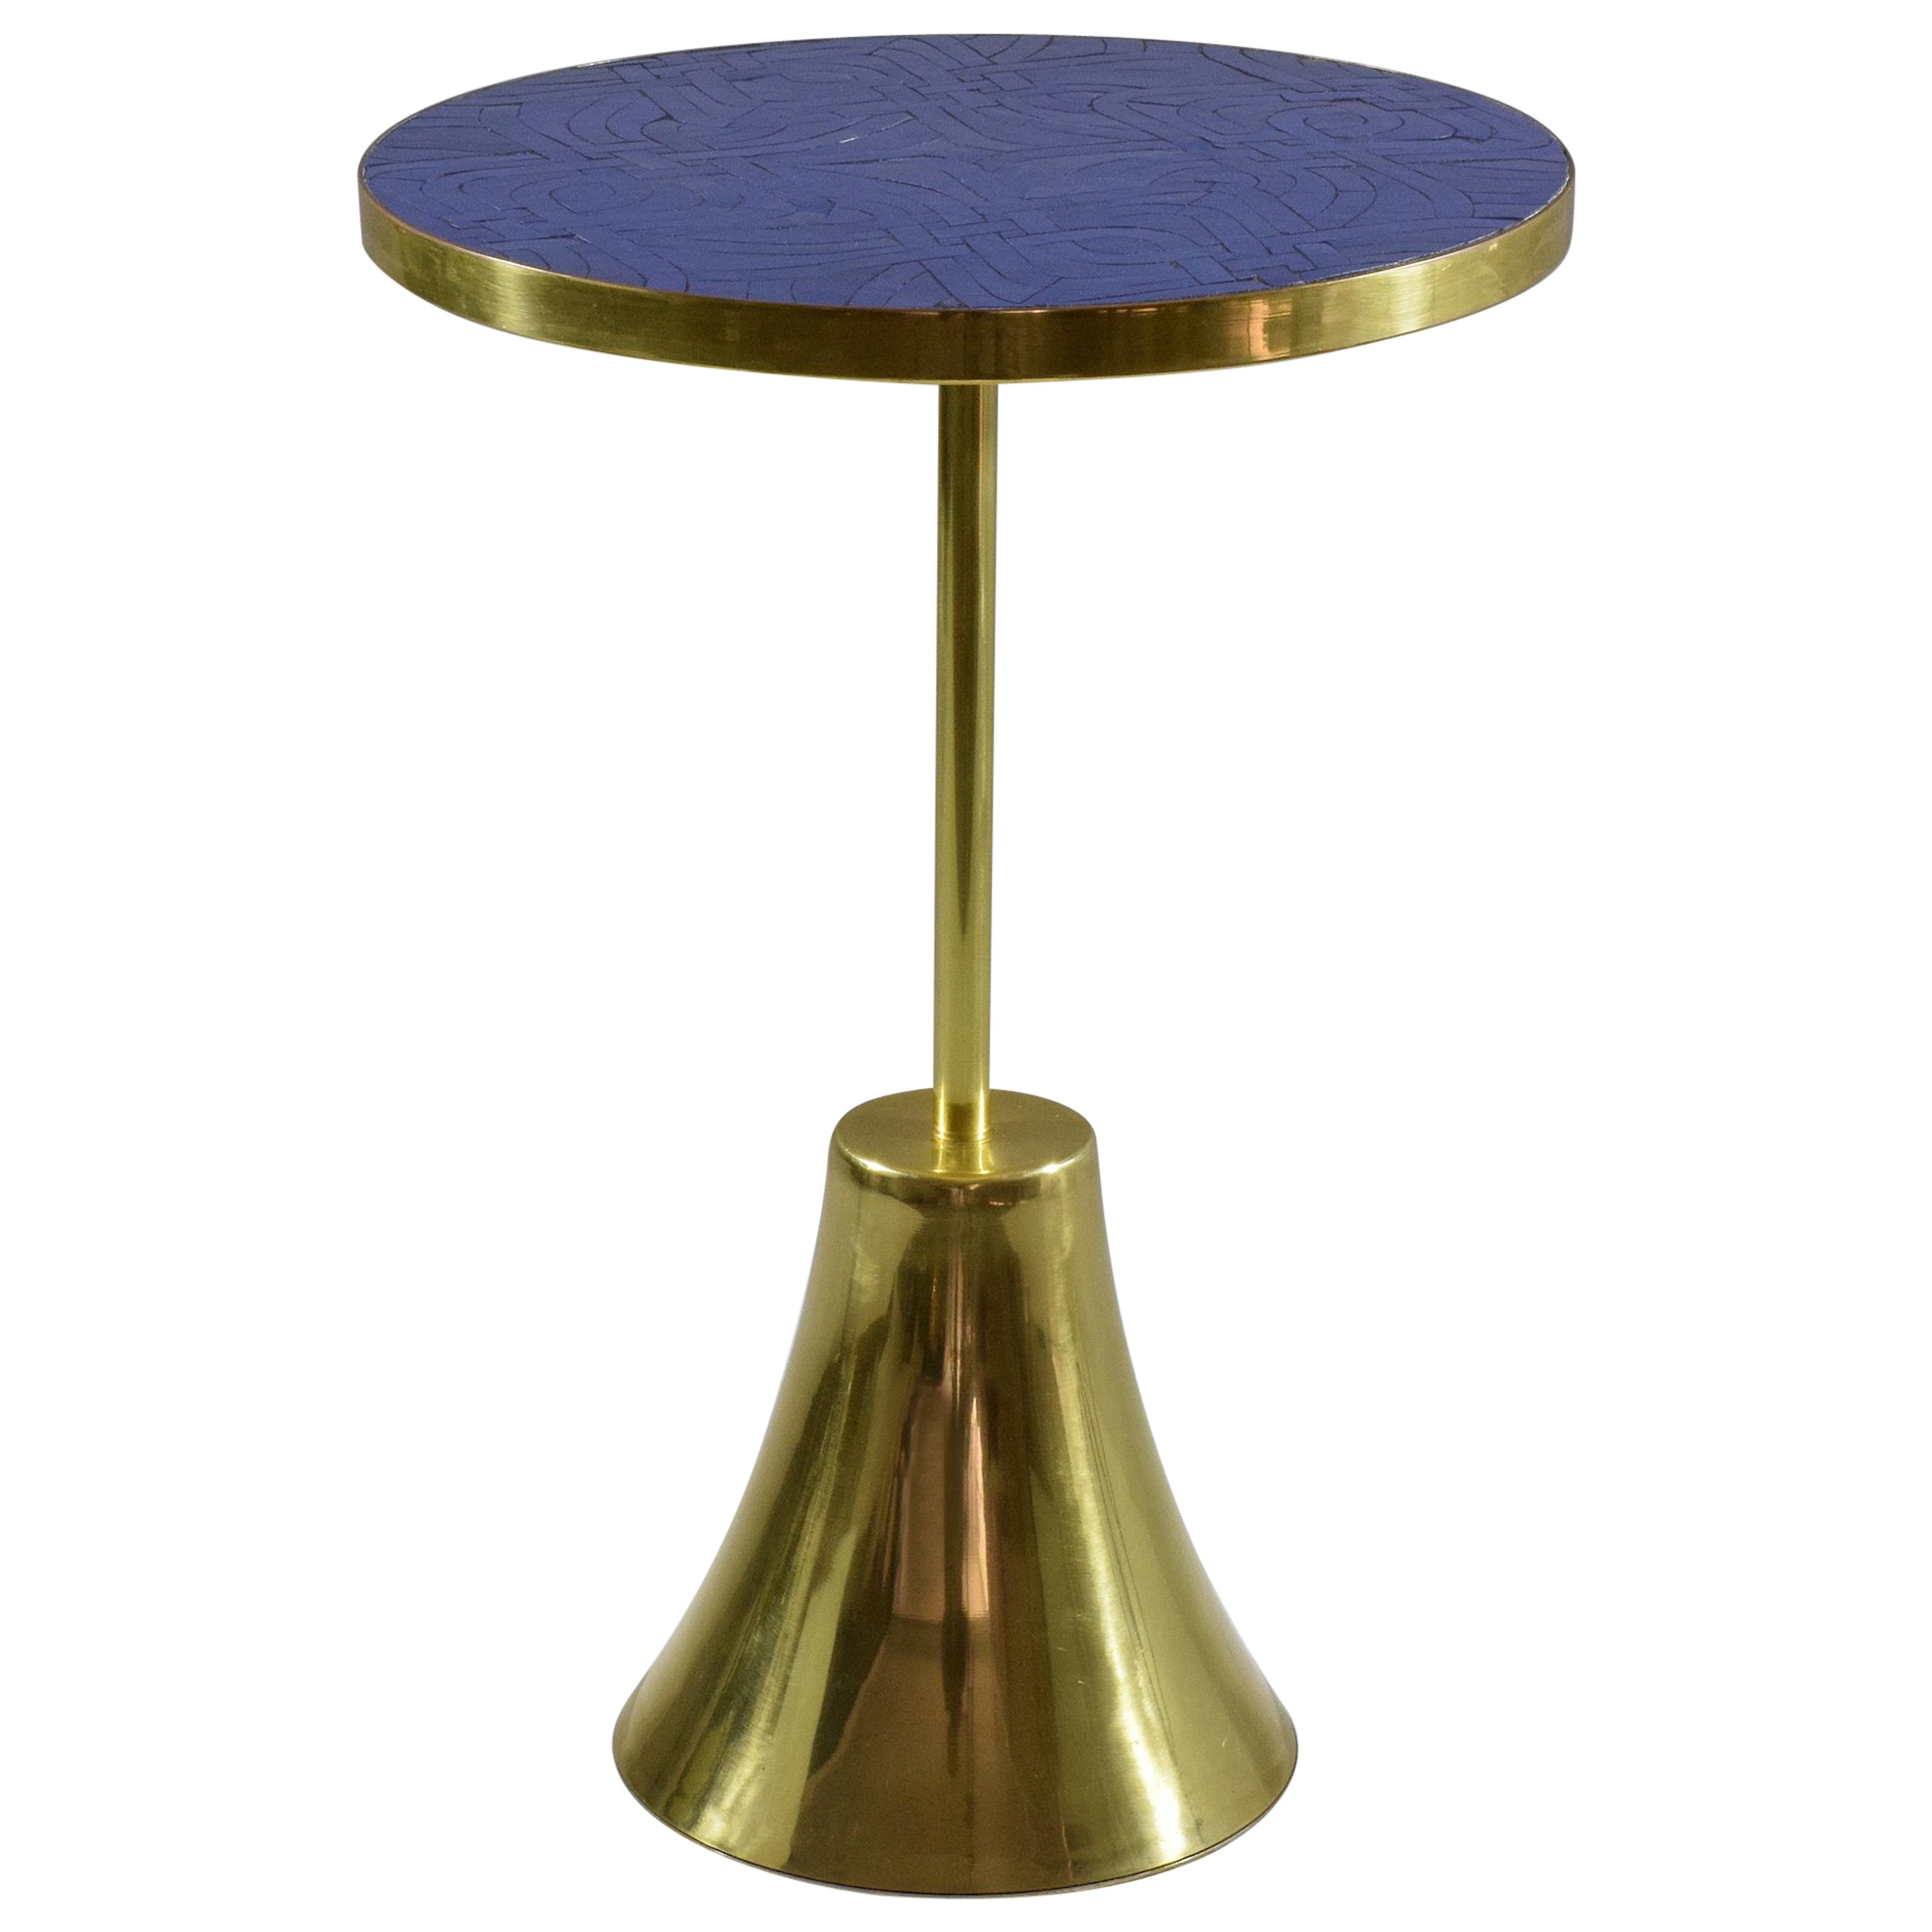 Z-II-I Contemporary Brass Mosaic Side Table, Flow Collection